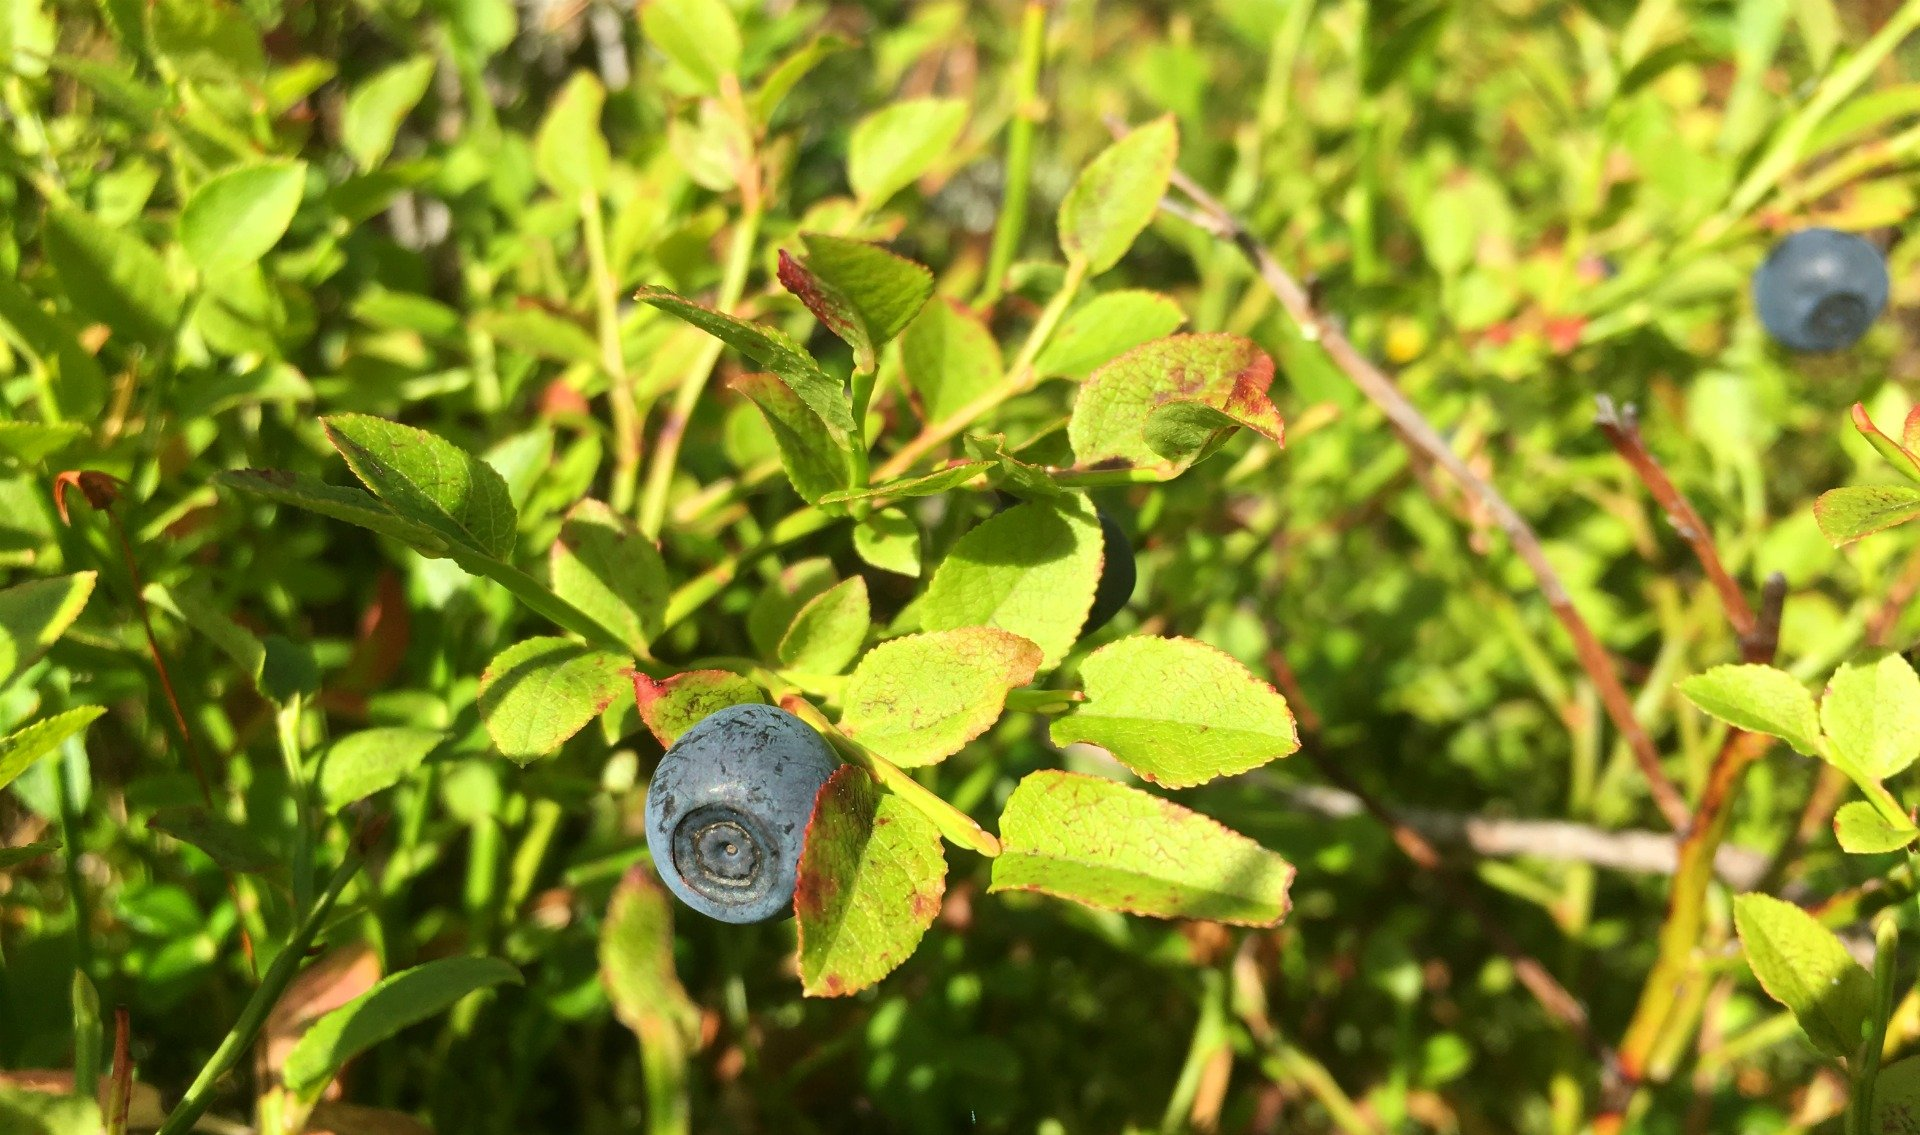 Swedish blueberries at the summer cabin